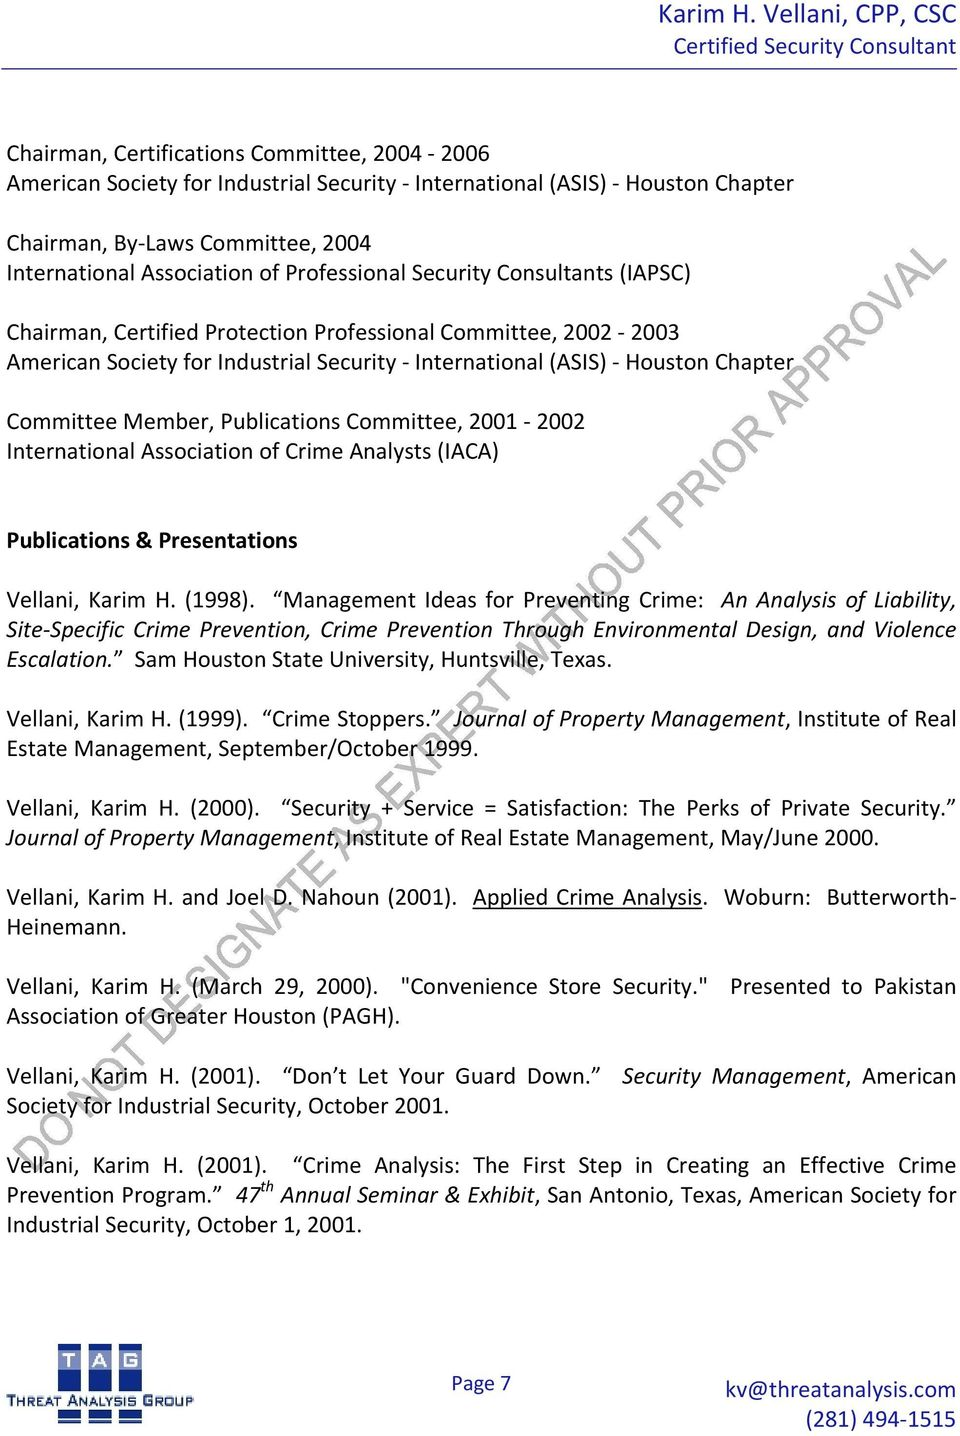 Management Ideas for Preventing Crime: An Analysis of Liability, Site Specific Crime Prevention, Crime Prevention Through Environmental Design, and Violence Escalation.